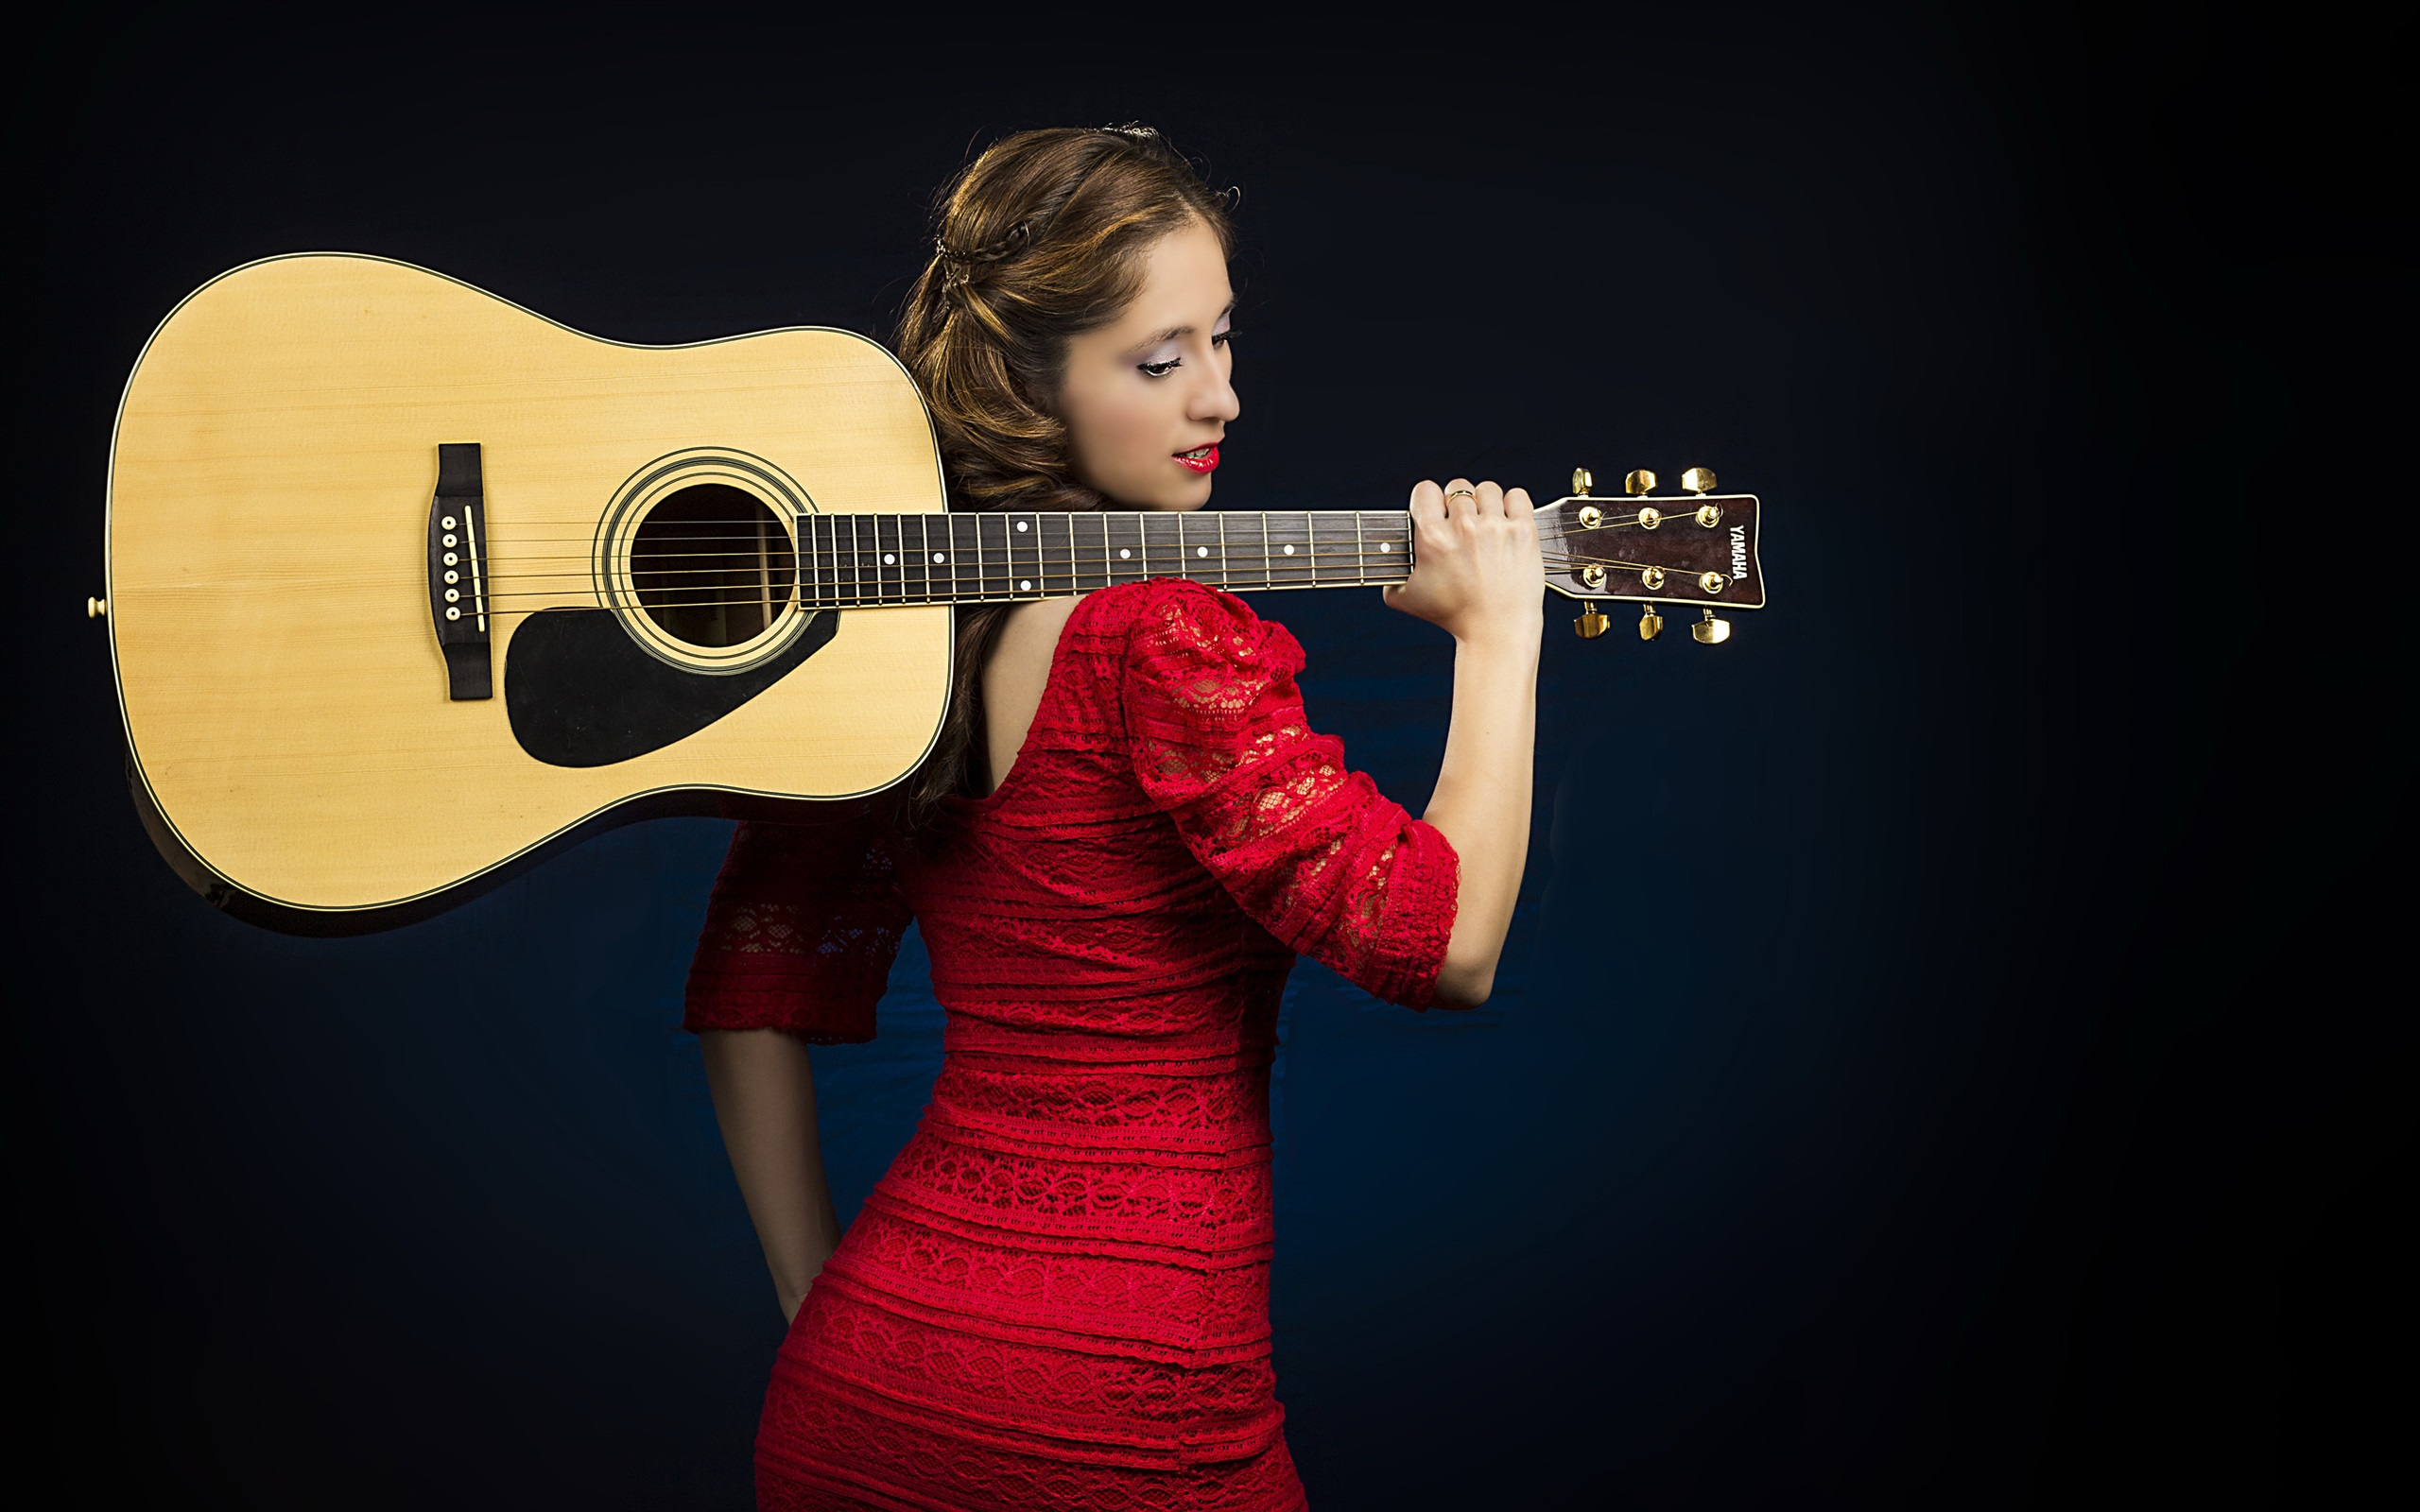 Beautiful Iphone 5s Wallpapers Wallpaper Red Dress Girl Guitar 3840x2160 Uhd 4k Picture